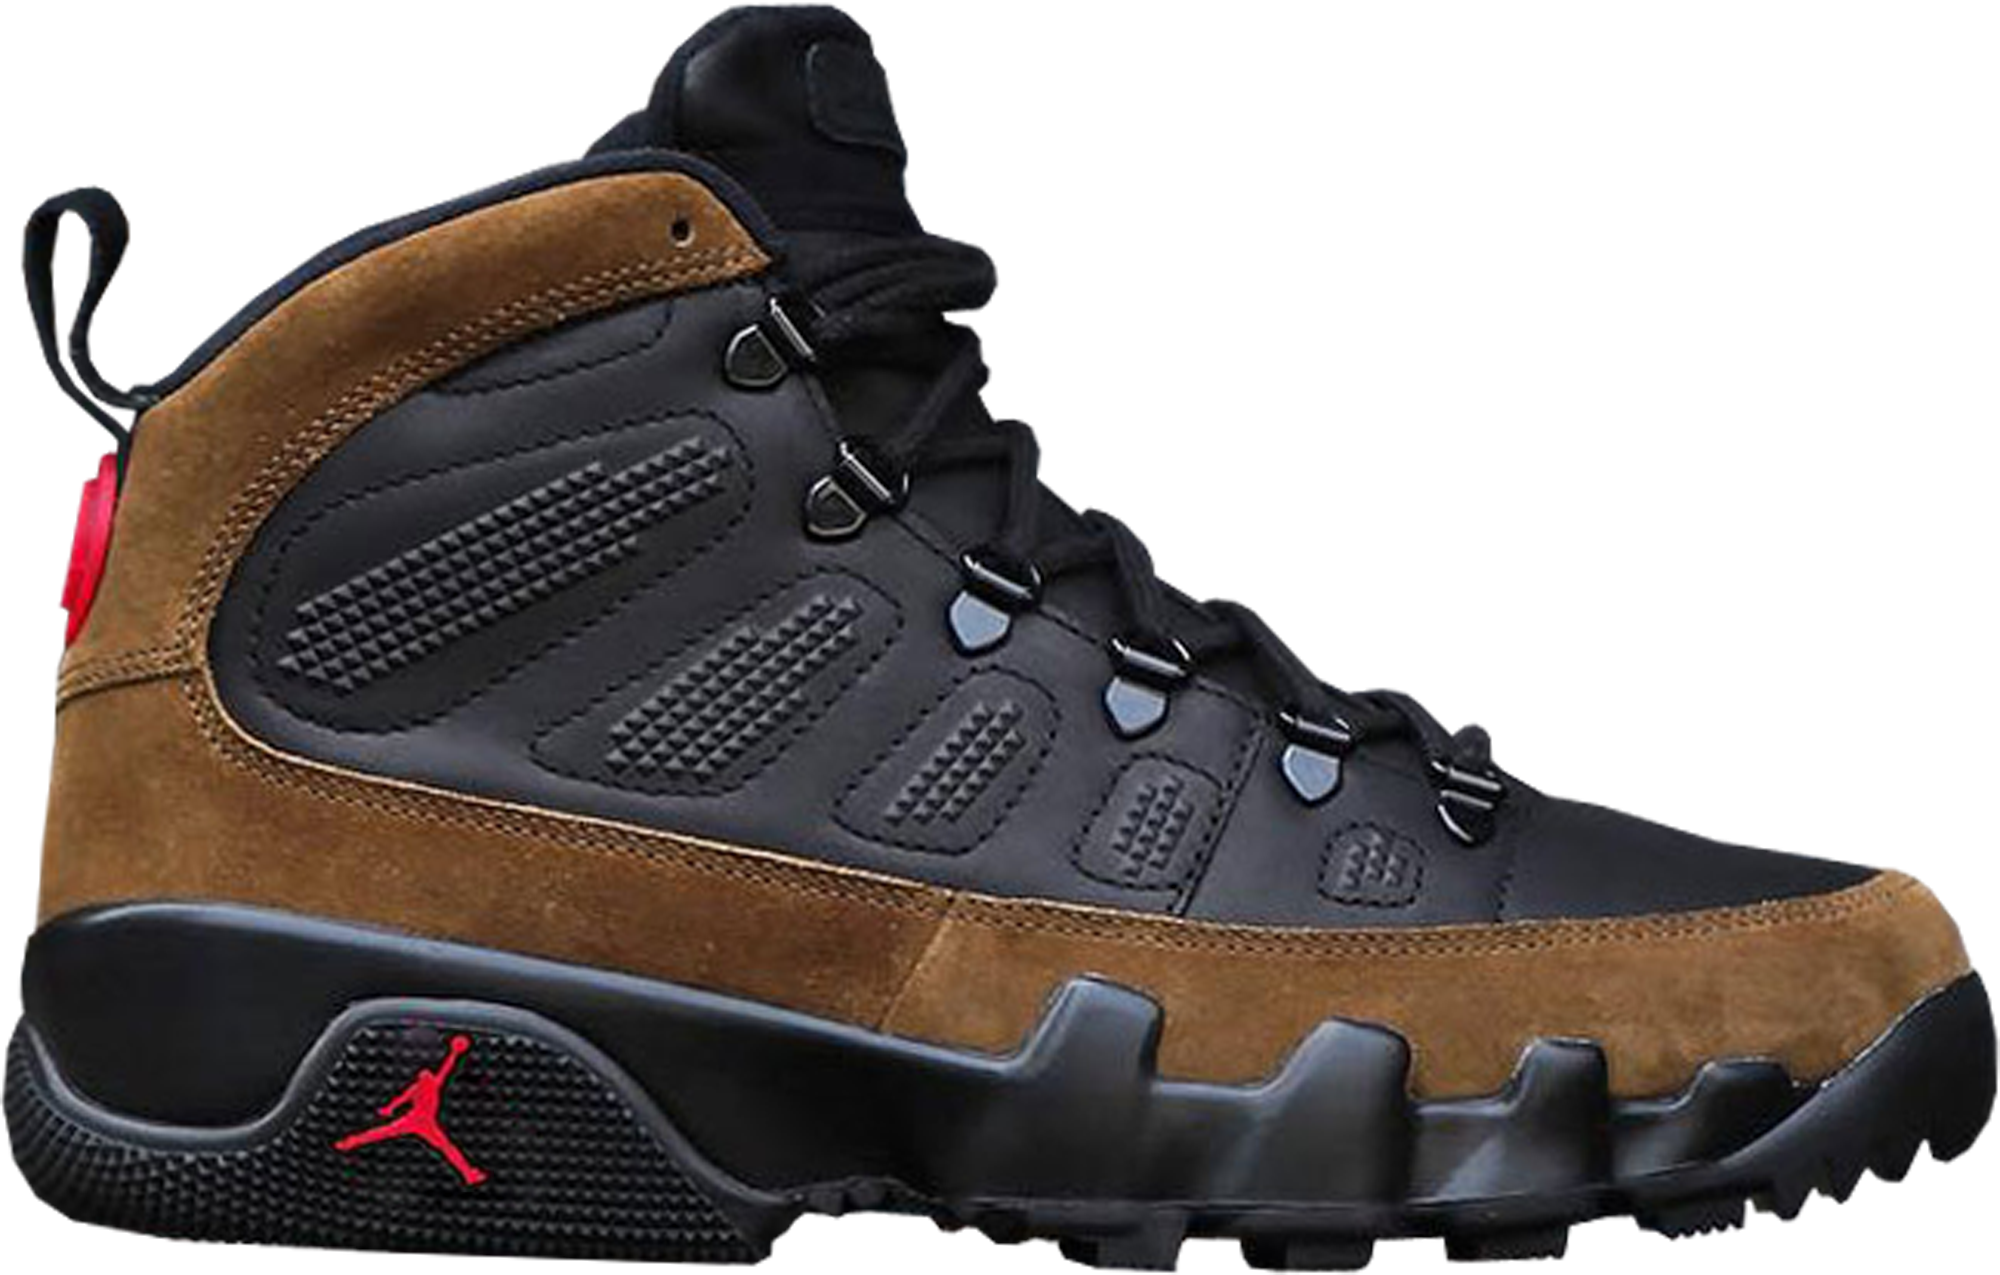 air jordan ix retro boot nrg 'black & light gum's stargate